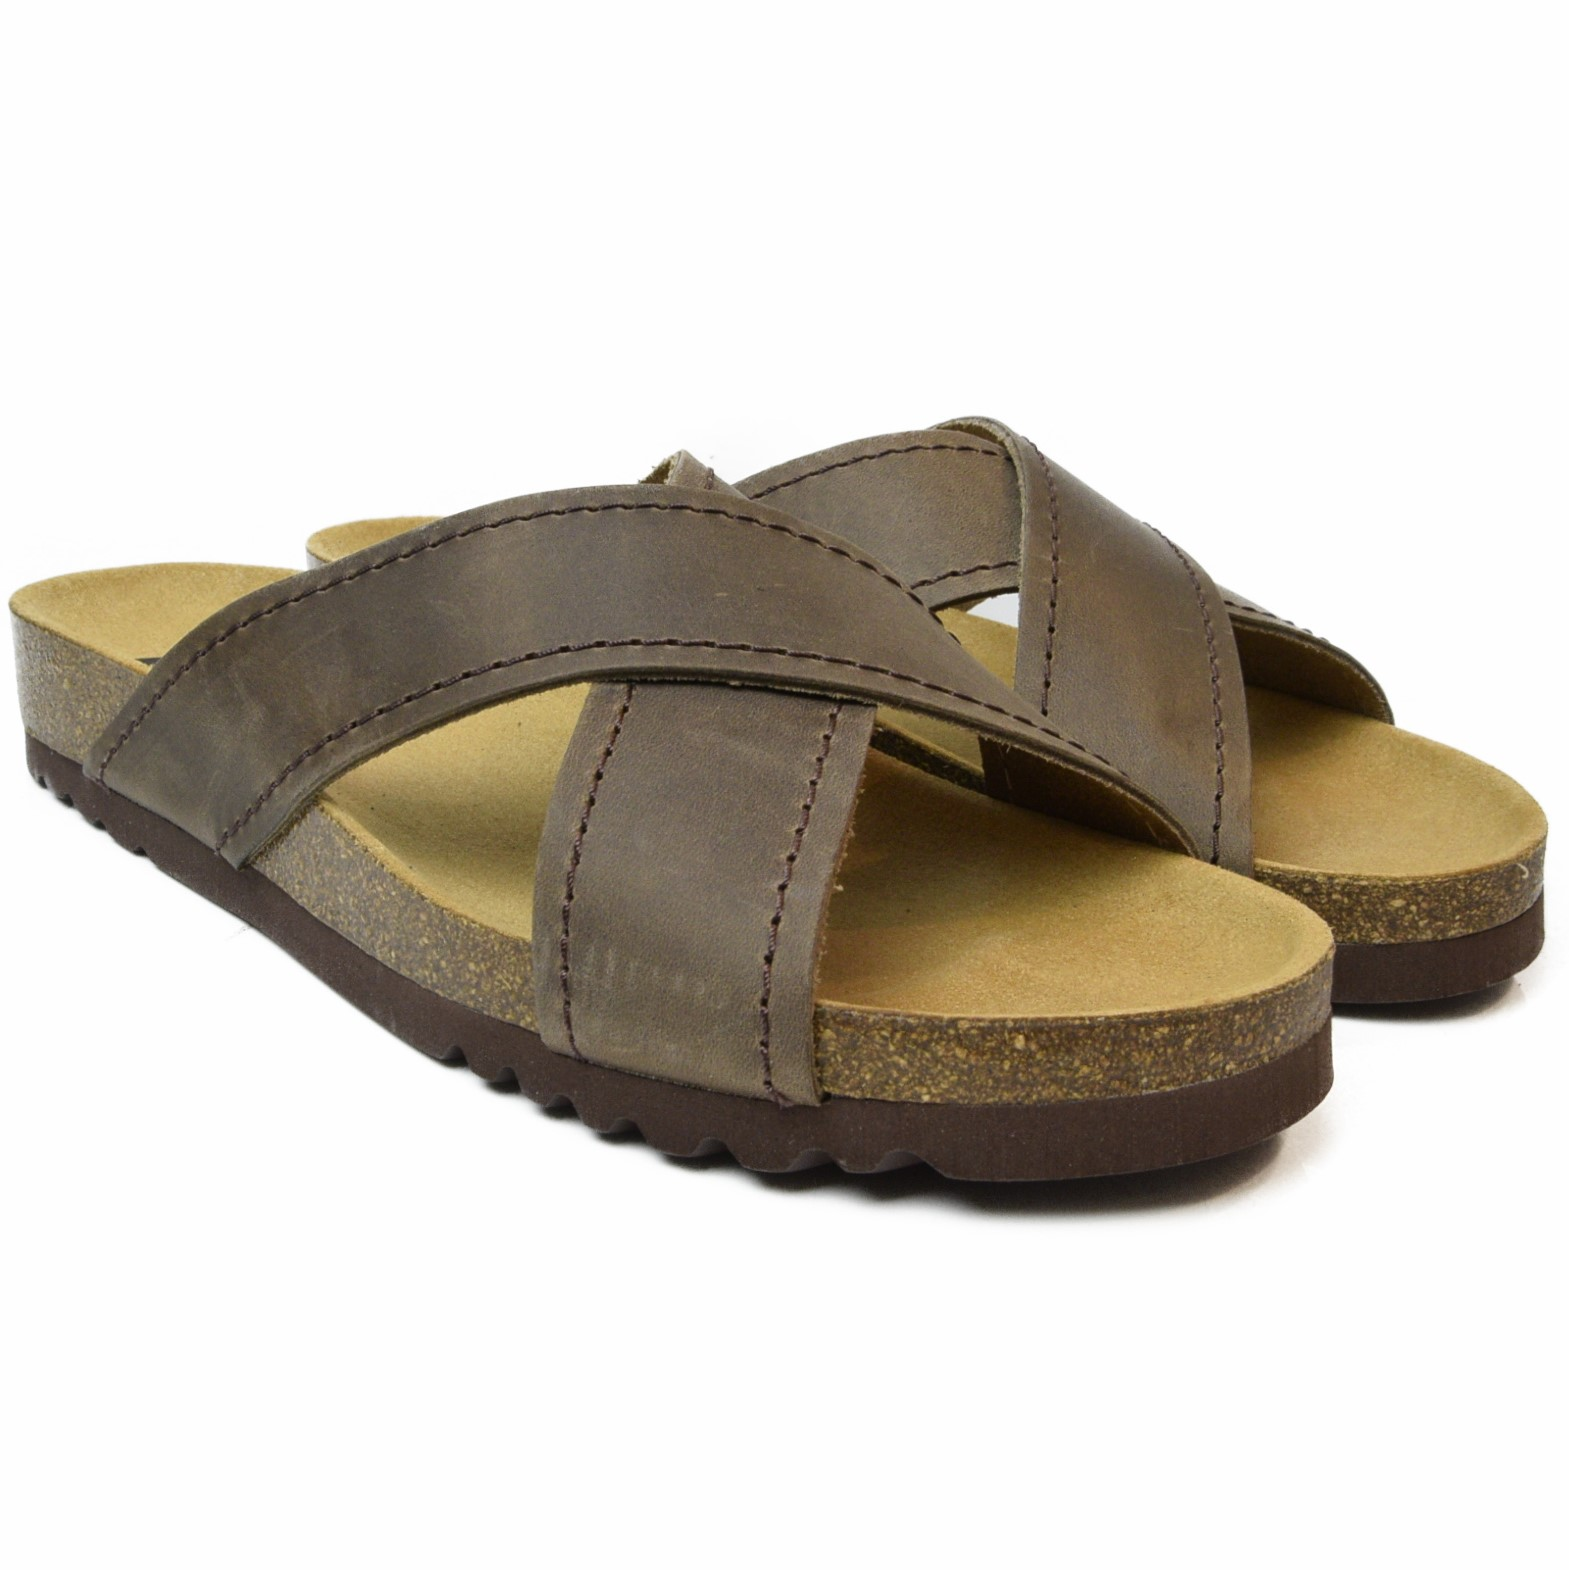 b02ad43a8 DR. SCHOLL WOMEN S CROSSED FLIP FLOPS SOFT LEATHER TANGOR DARK BROWN ...